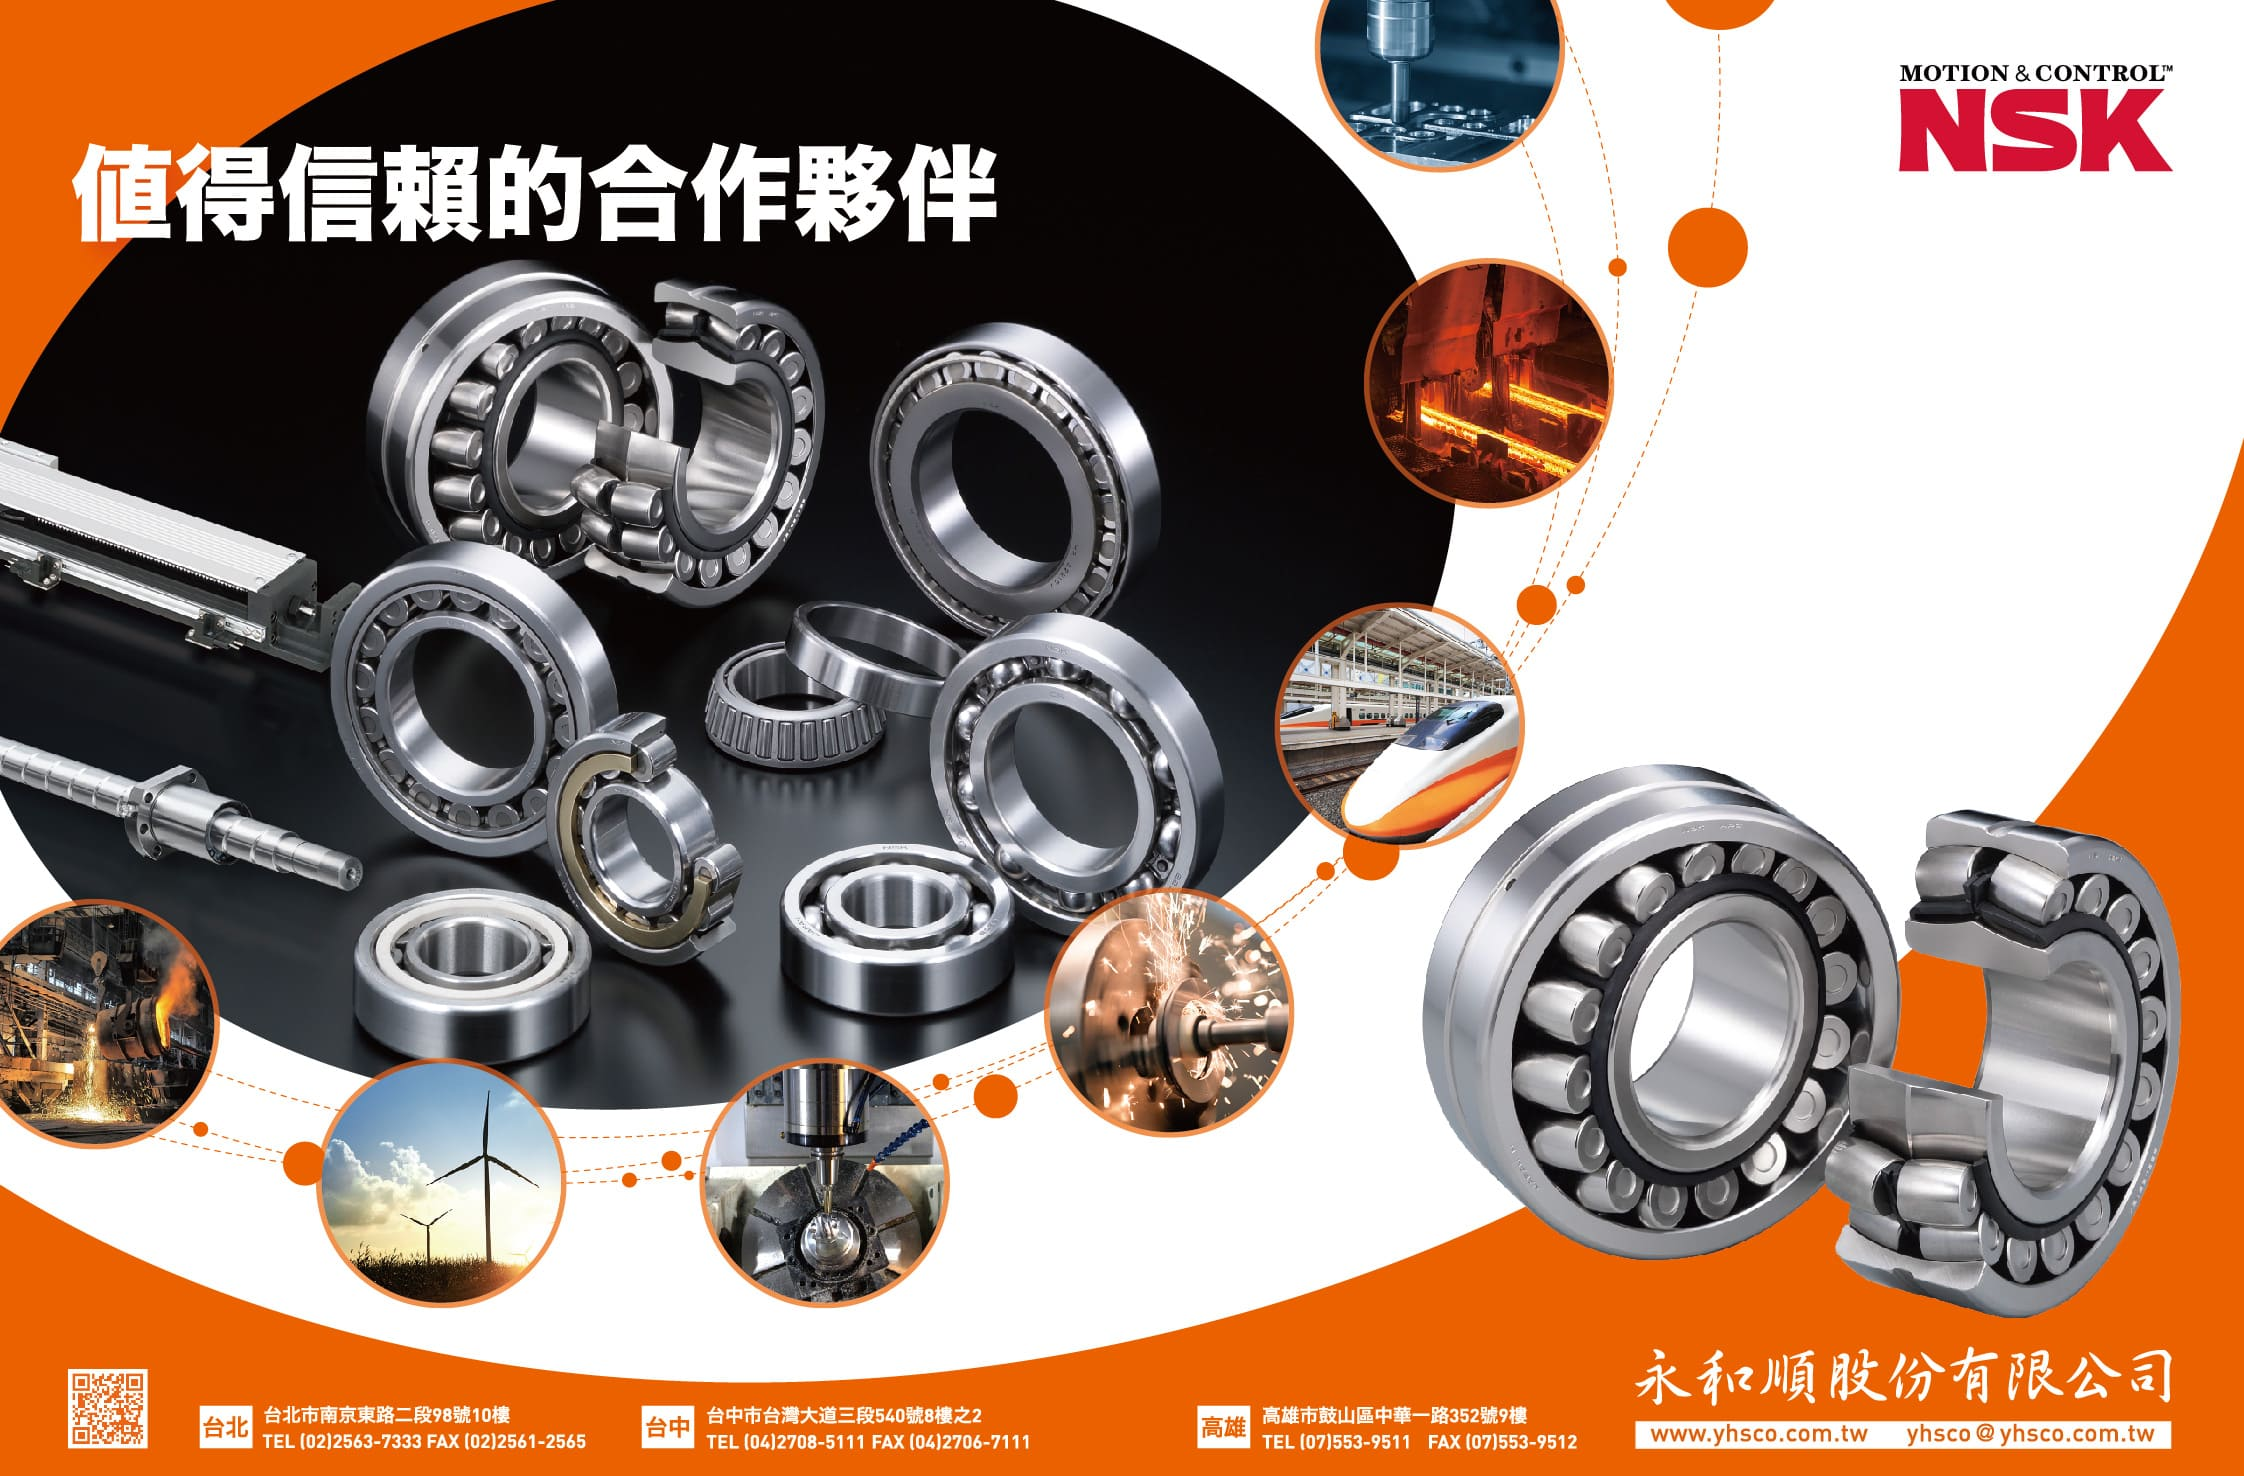 YUNG HO SHUN CO., LTD.